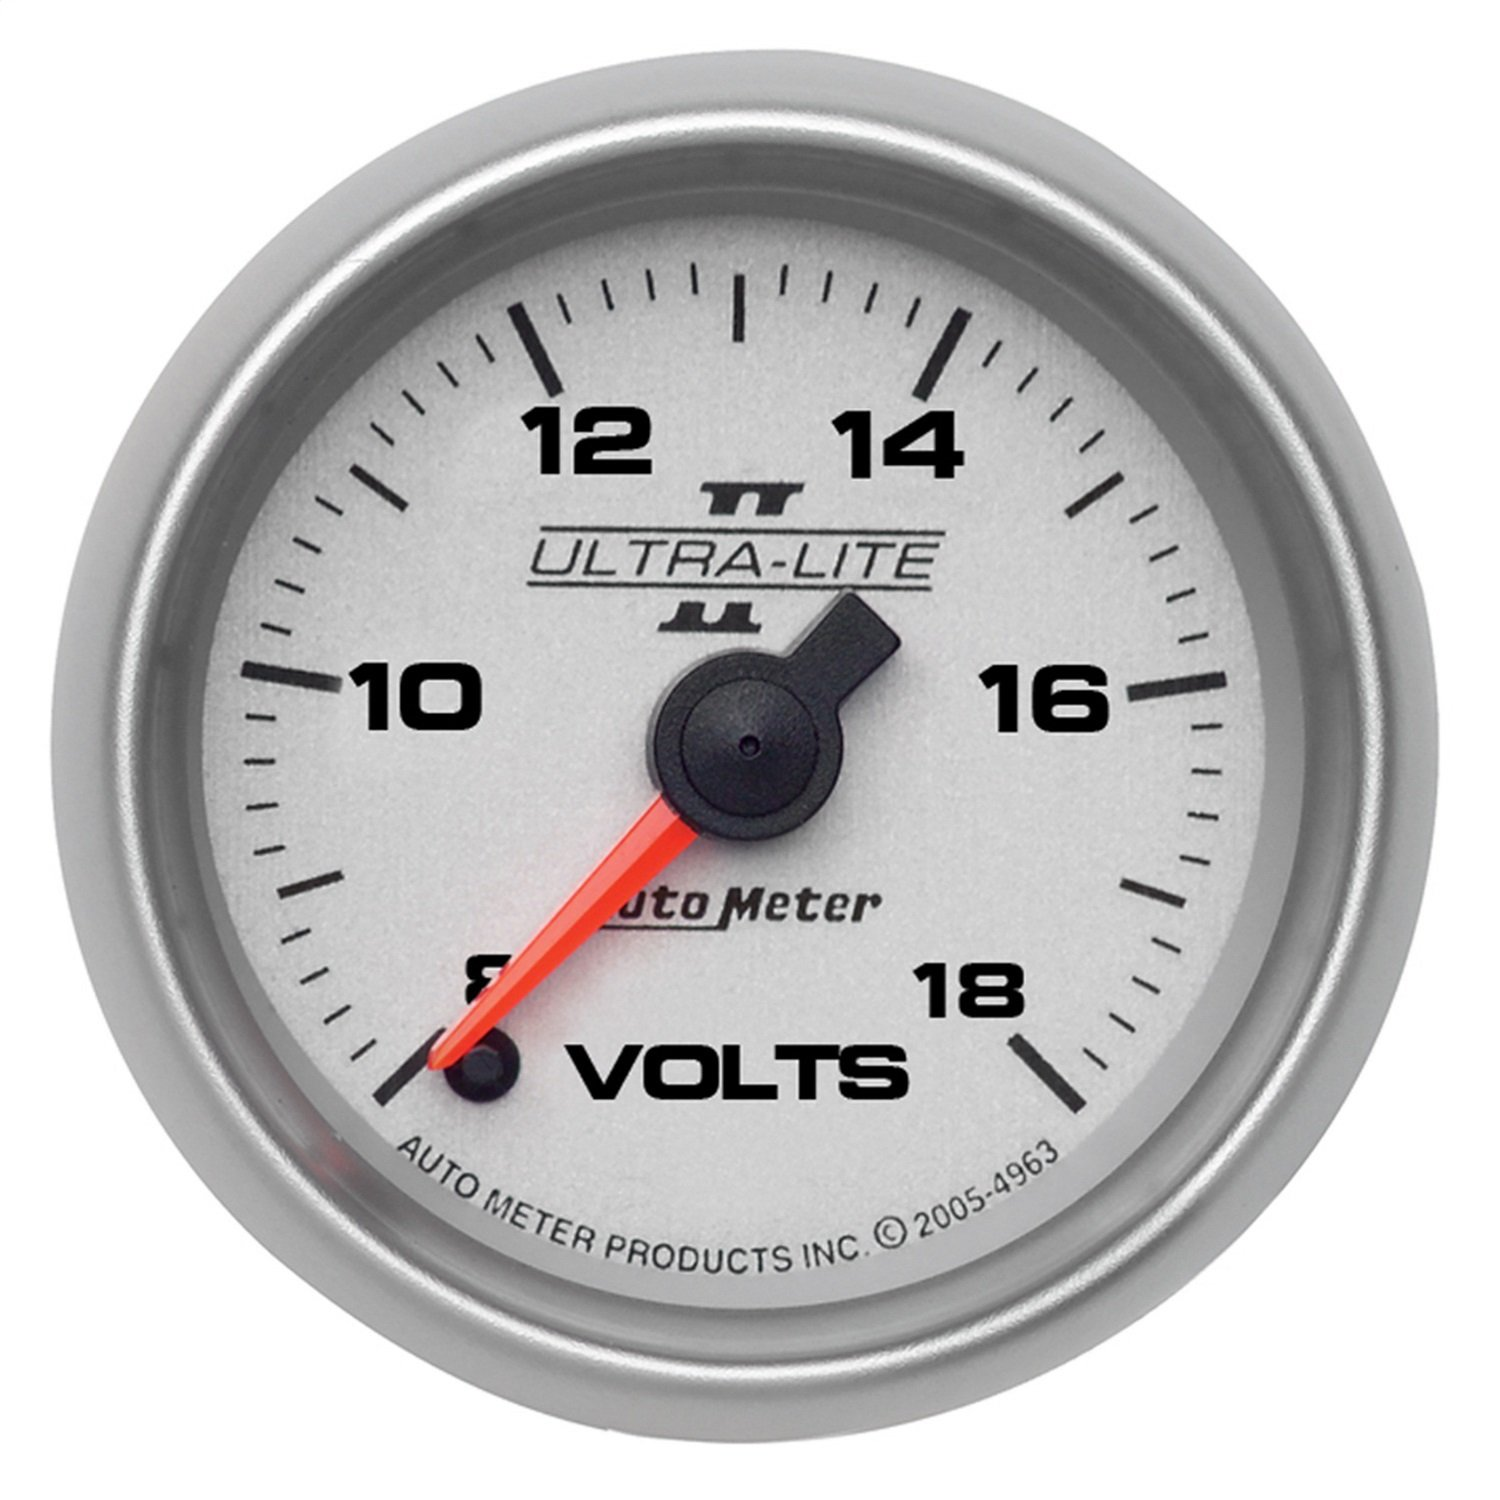 Auto Meter 4991 Ultra-Lite II 2-1/16'' 8-18V Full Sweep Electric Voltmeter by AUTO METER